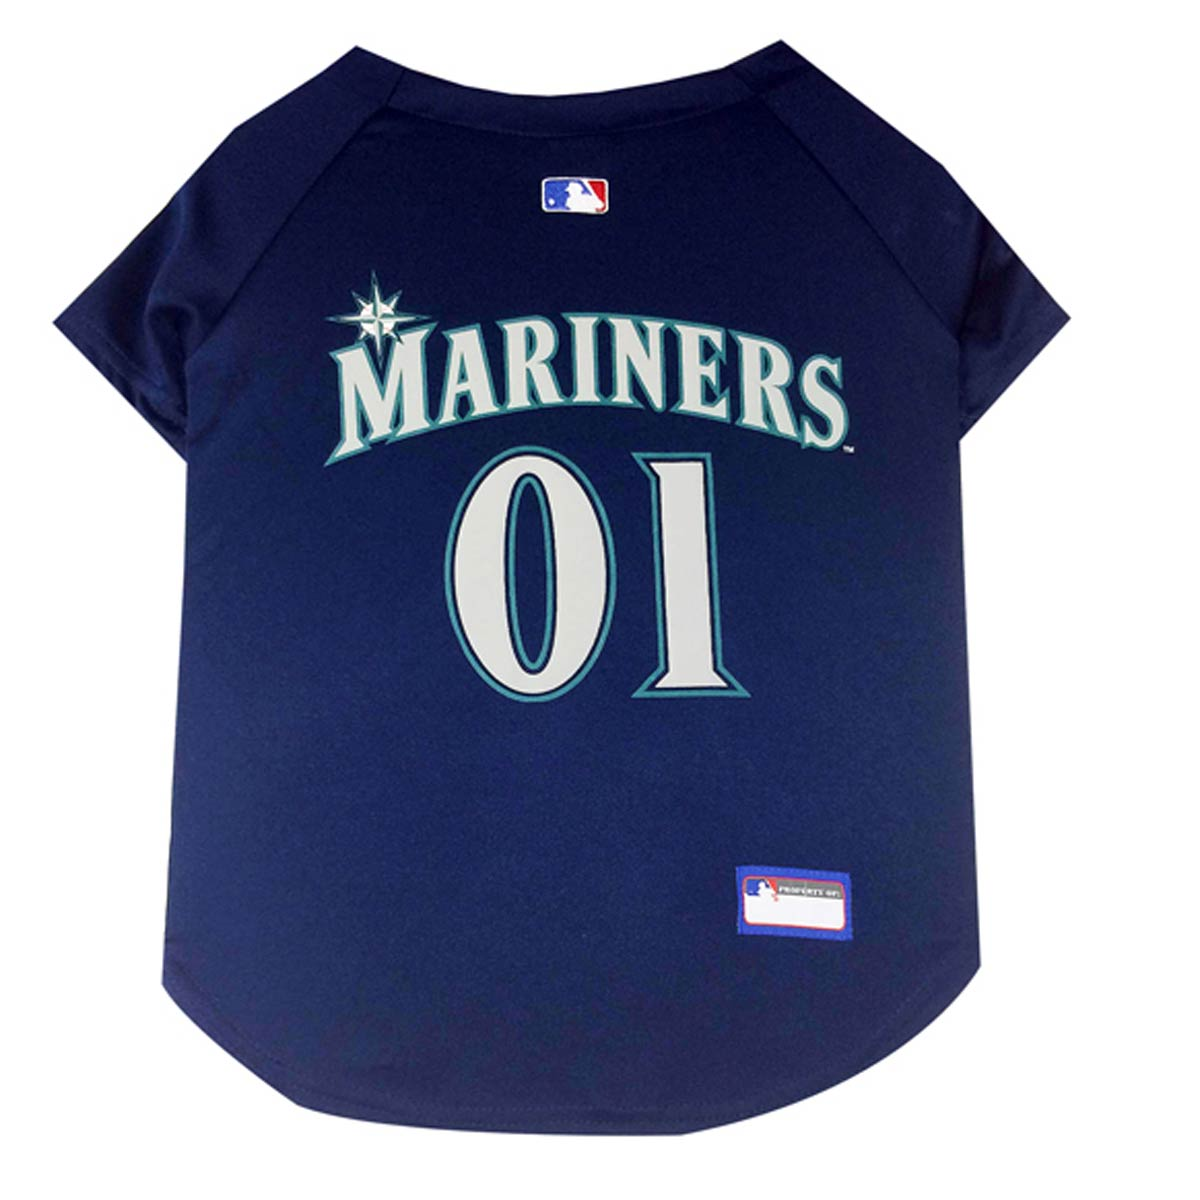 Seattle Mariners Officially Licensed Dog Jersey - Navy Blue